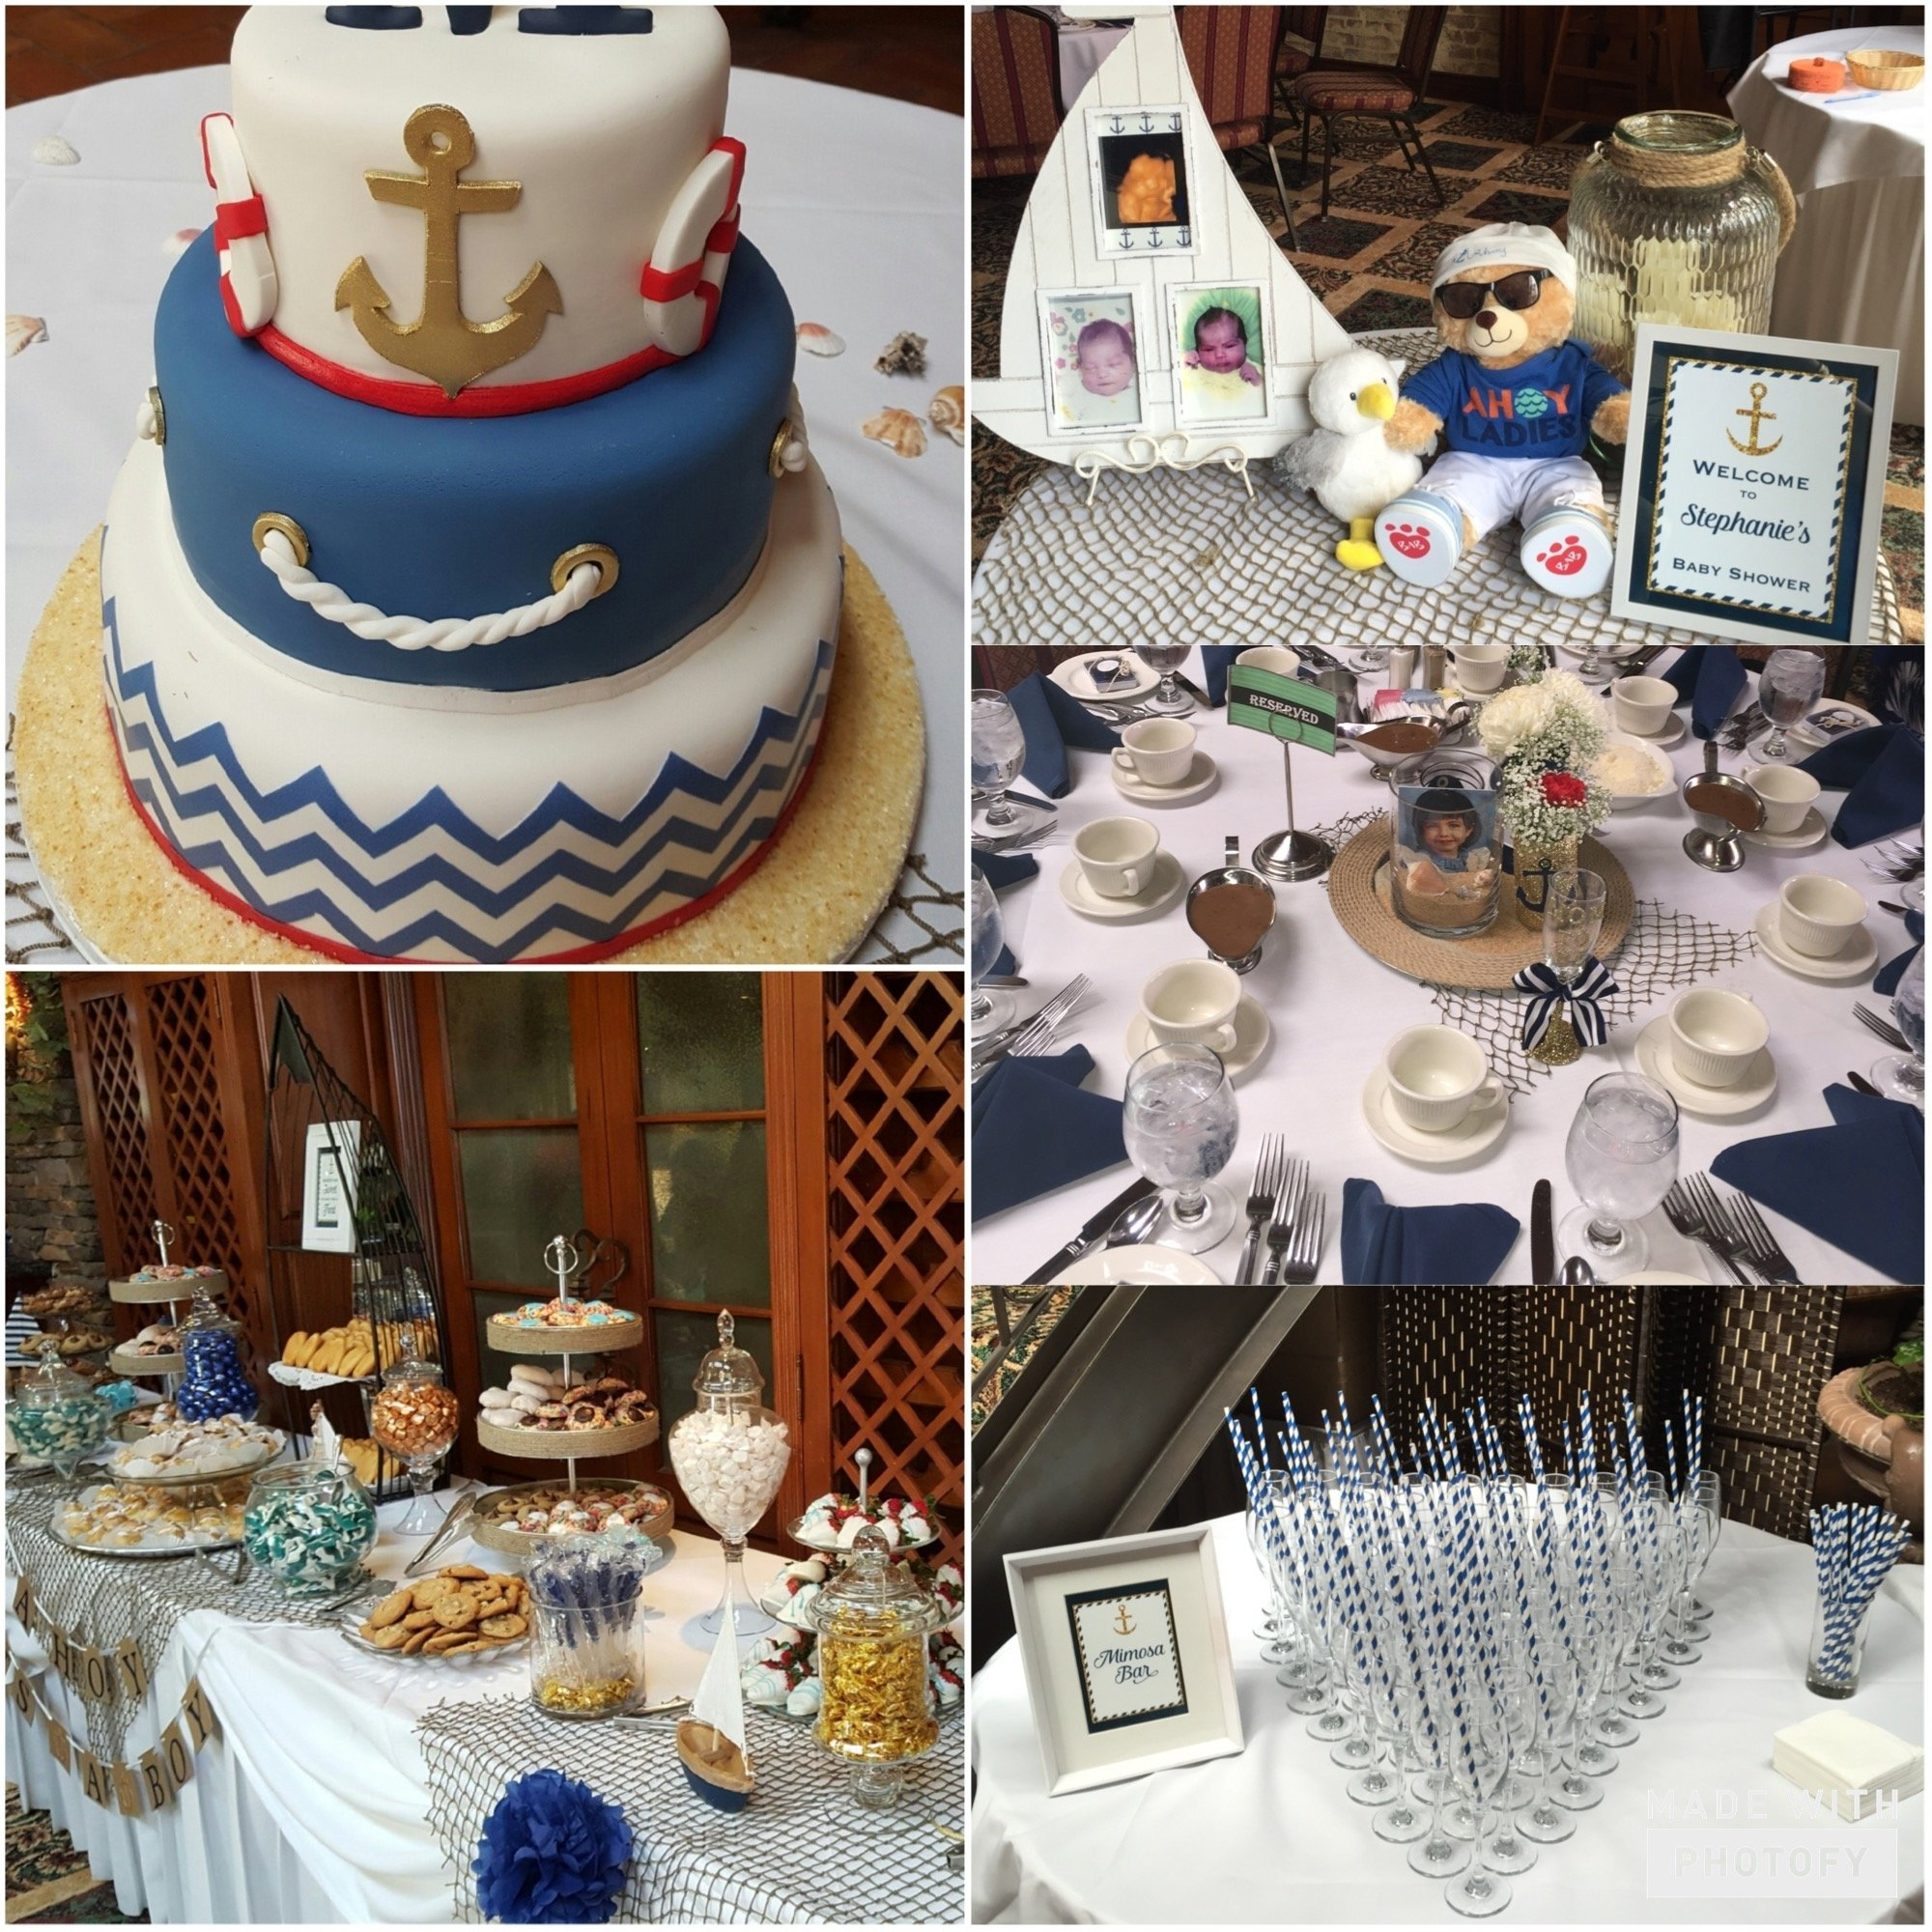 10 Trendy Baby Shower For Boys Ideas unique gender reveal party ideas that wont empty your wallet baby 4 2021